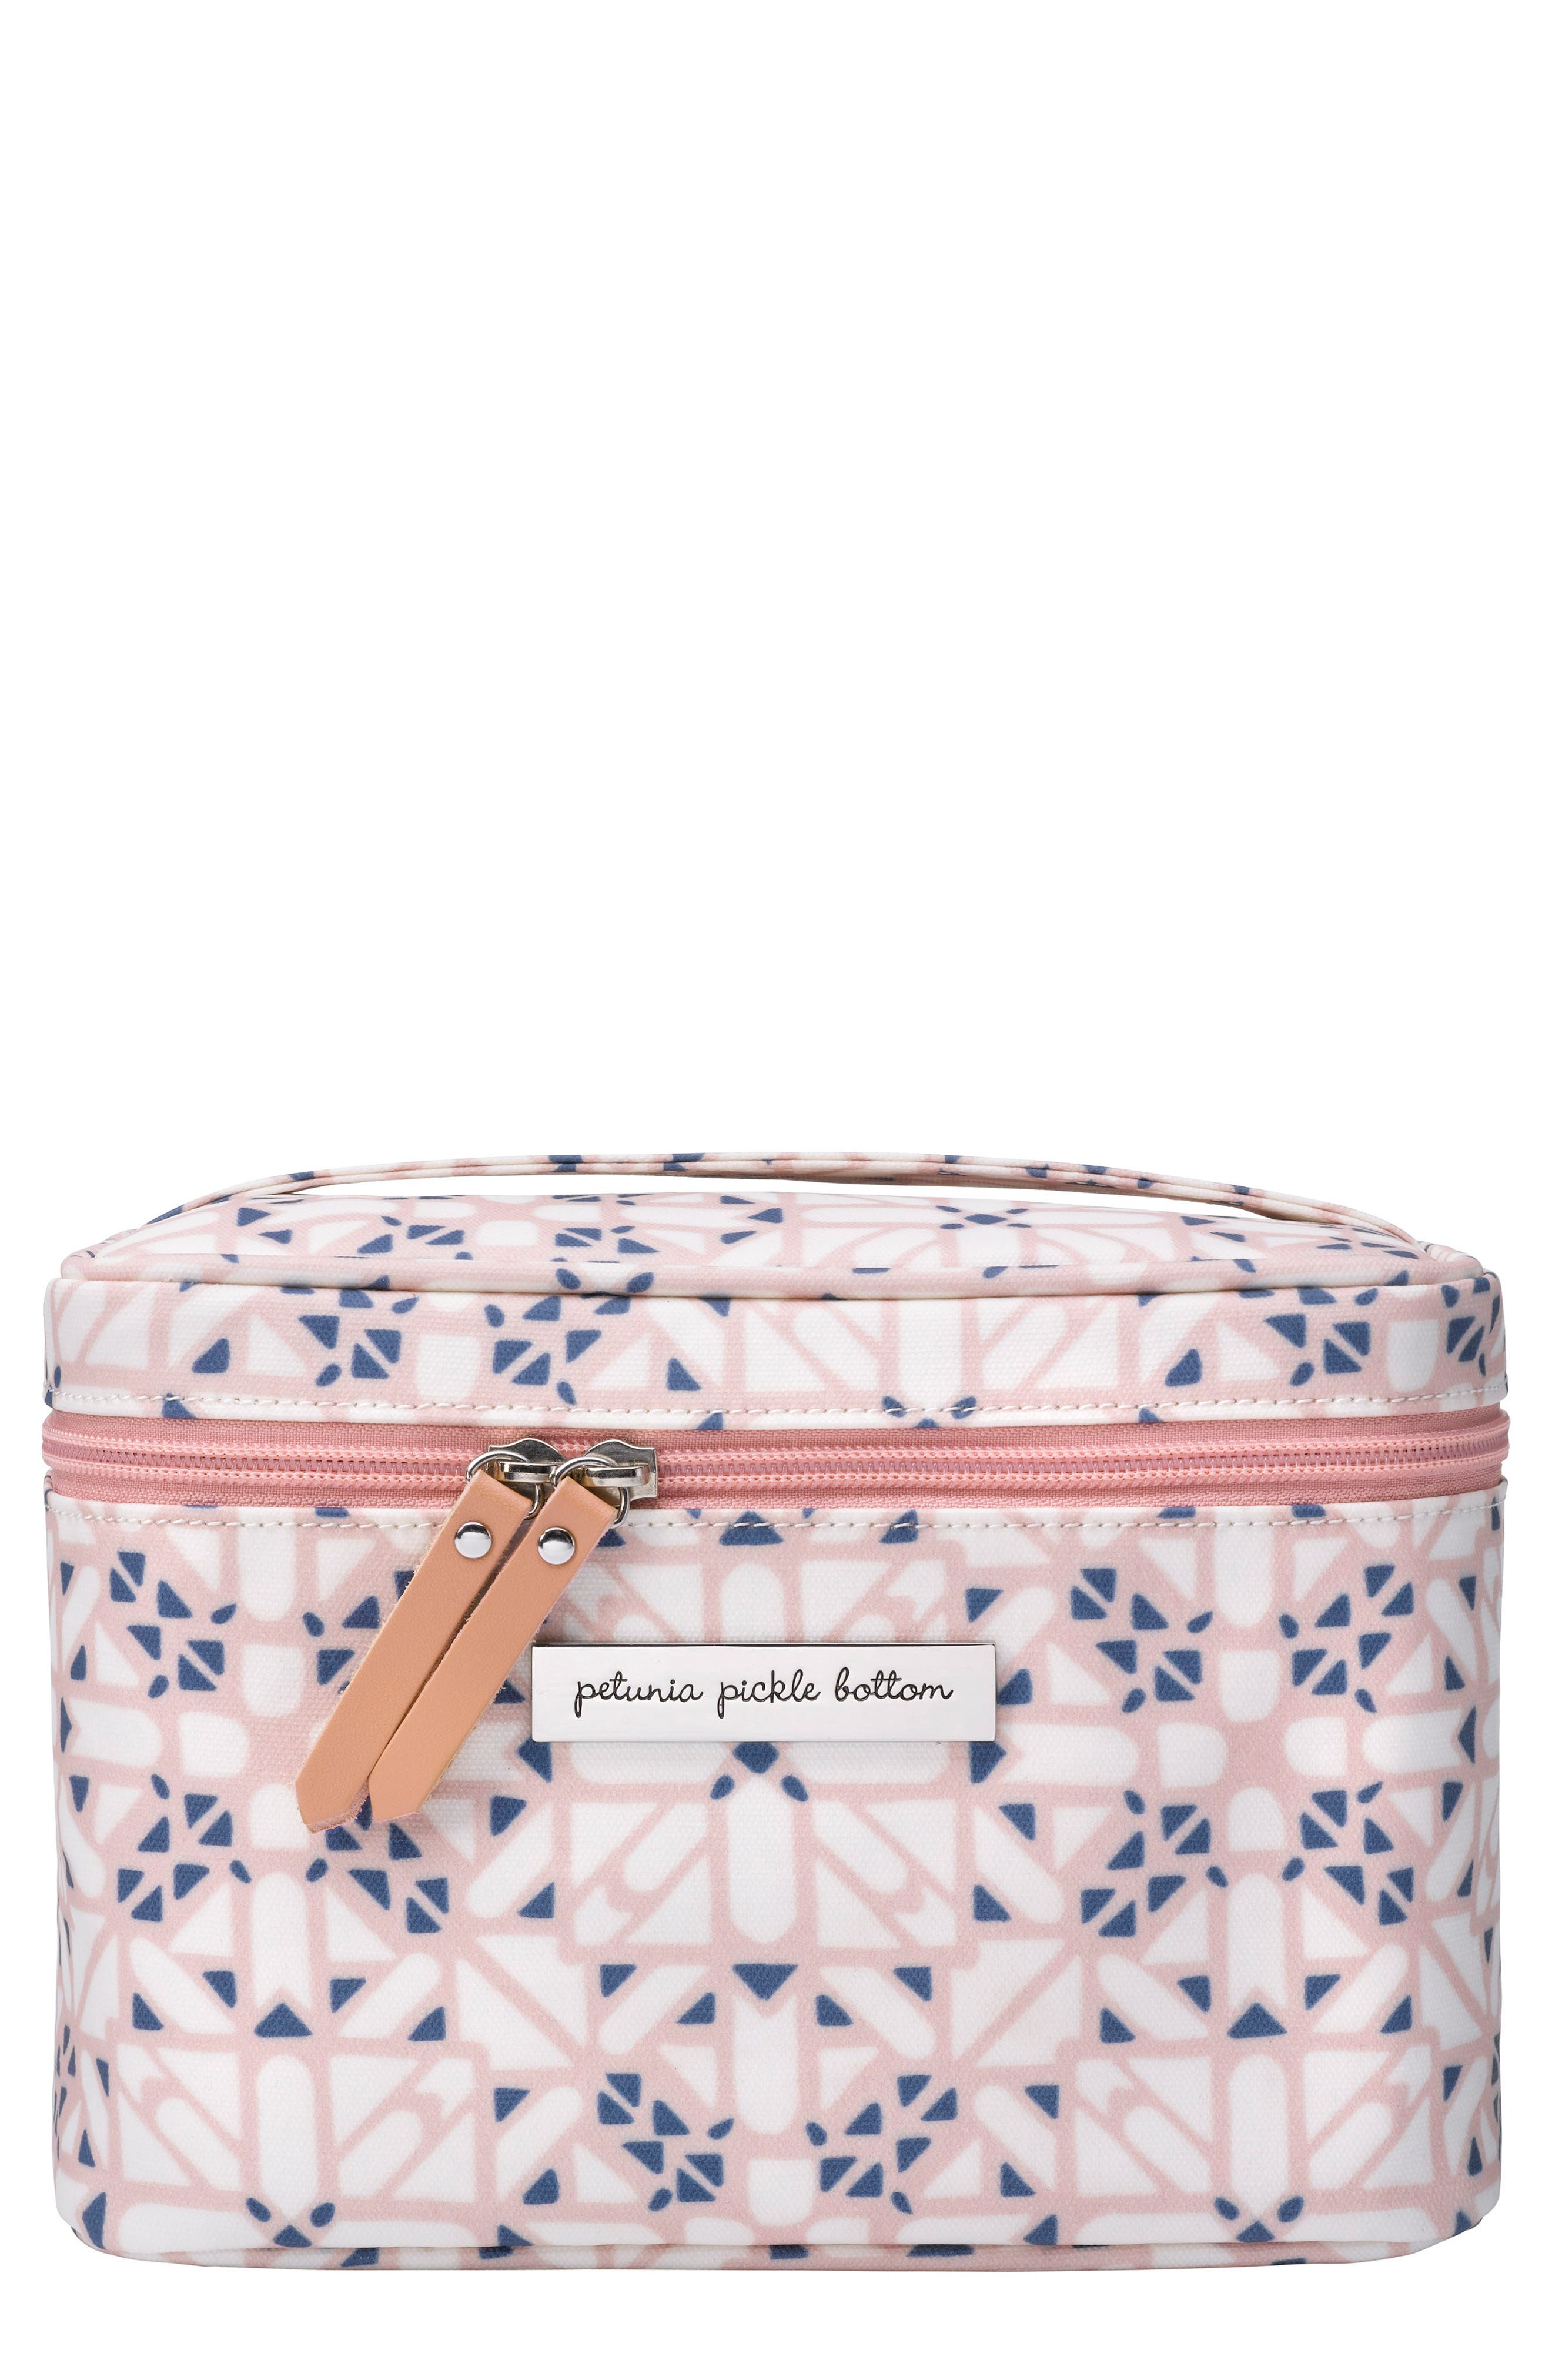 64060f48f80c Luggage & Travel Bags   Nordstrom